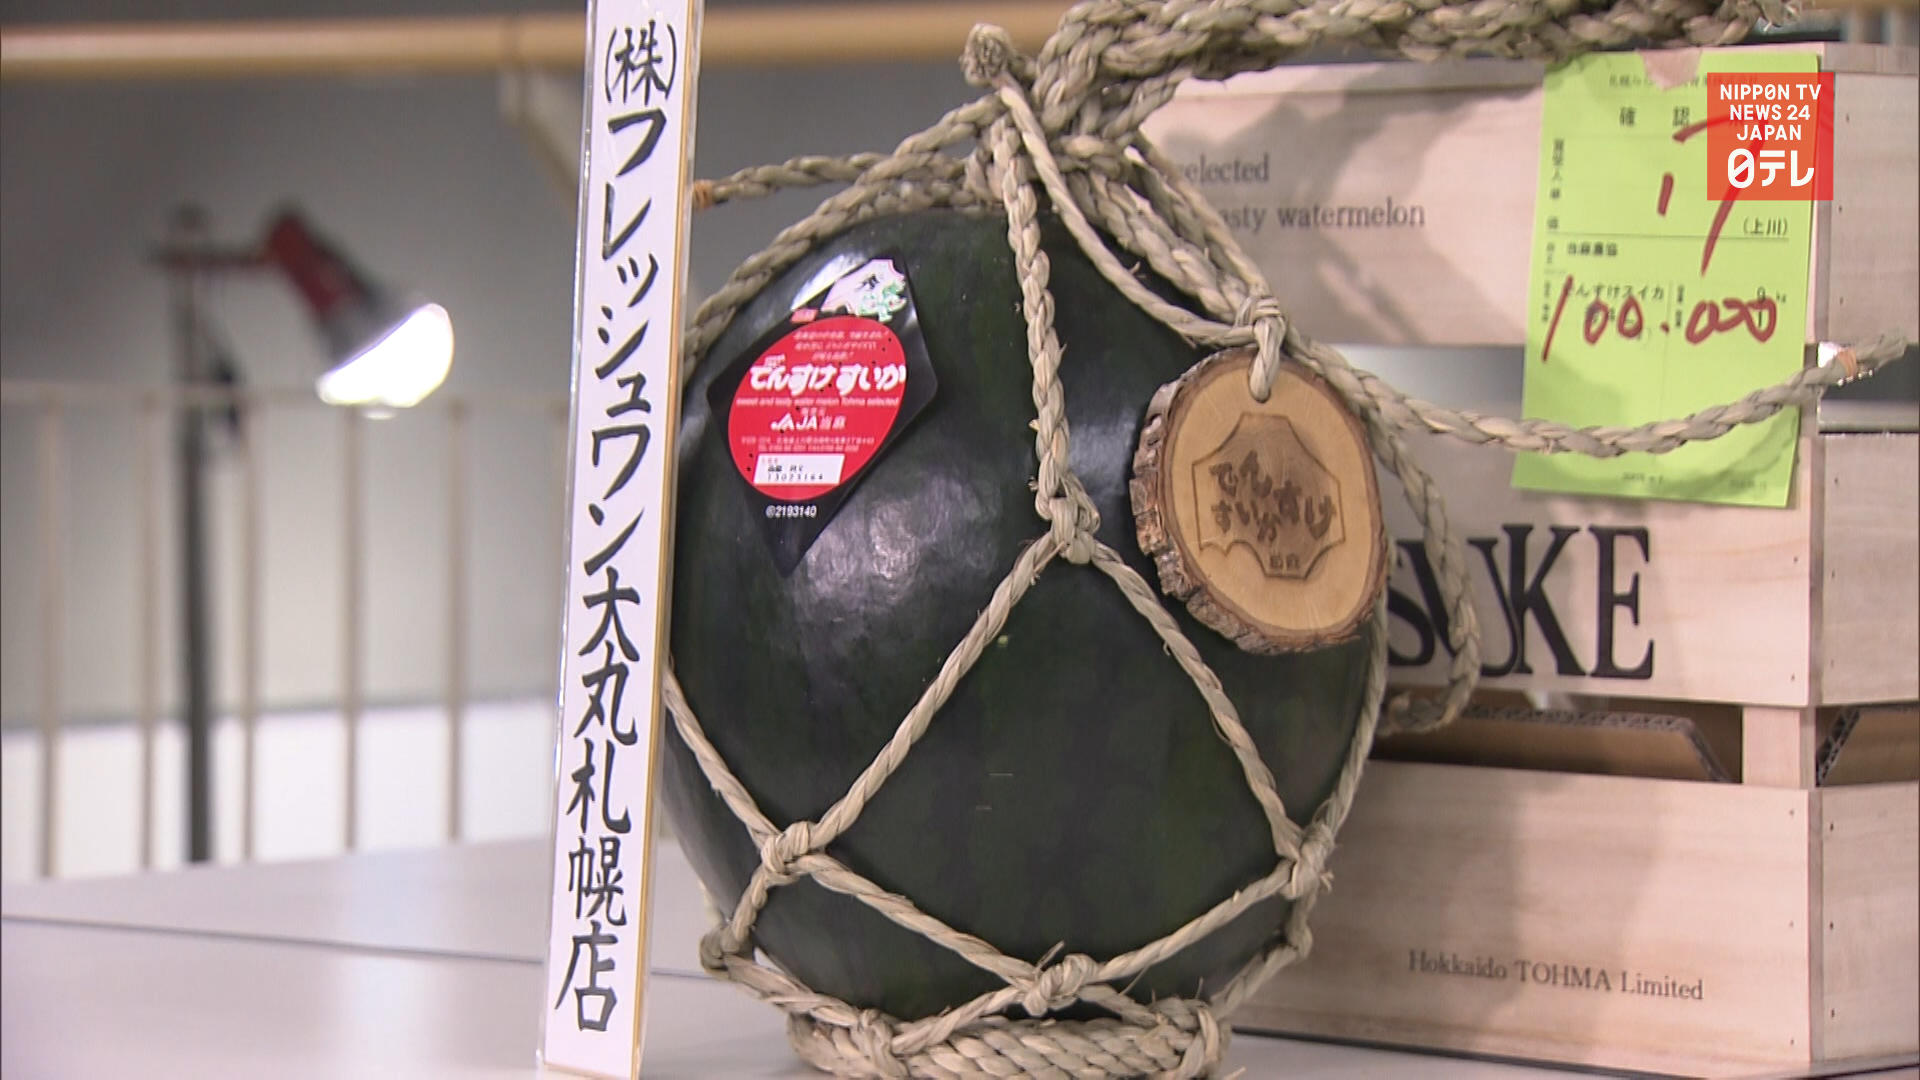 High-end watermelon fetches 100,000 yen